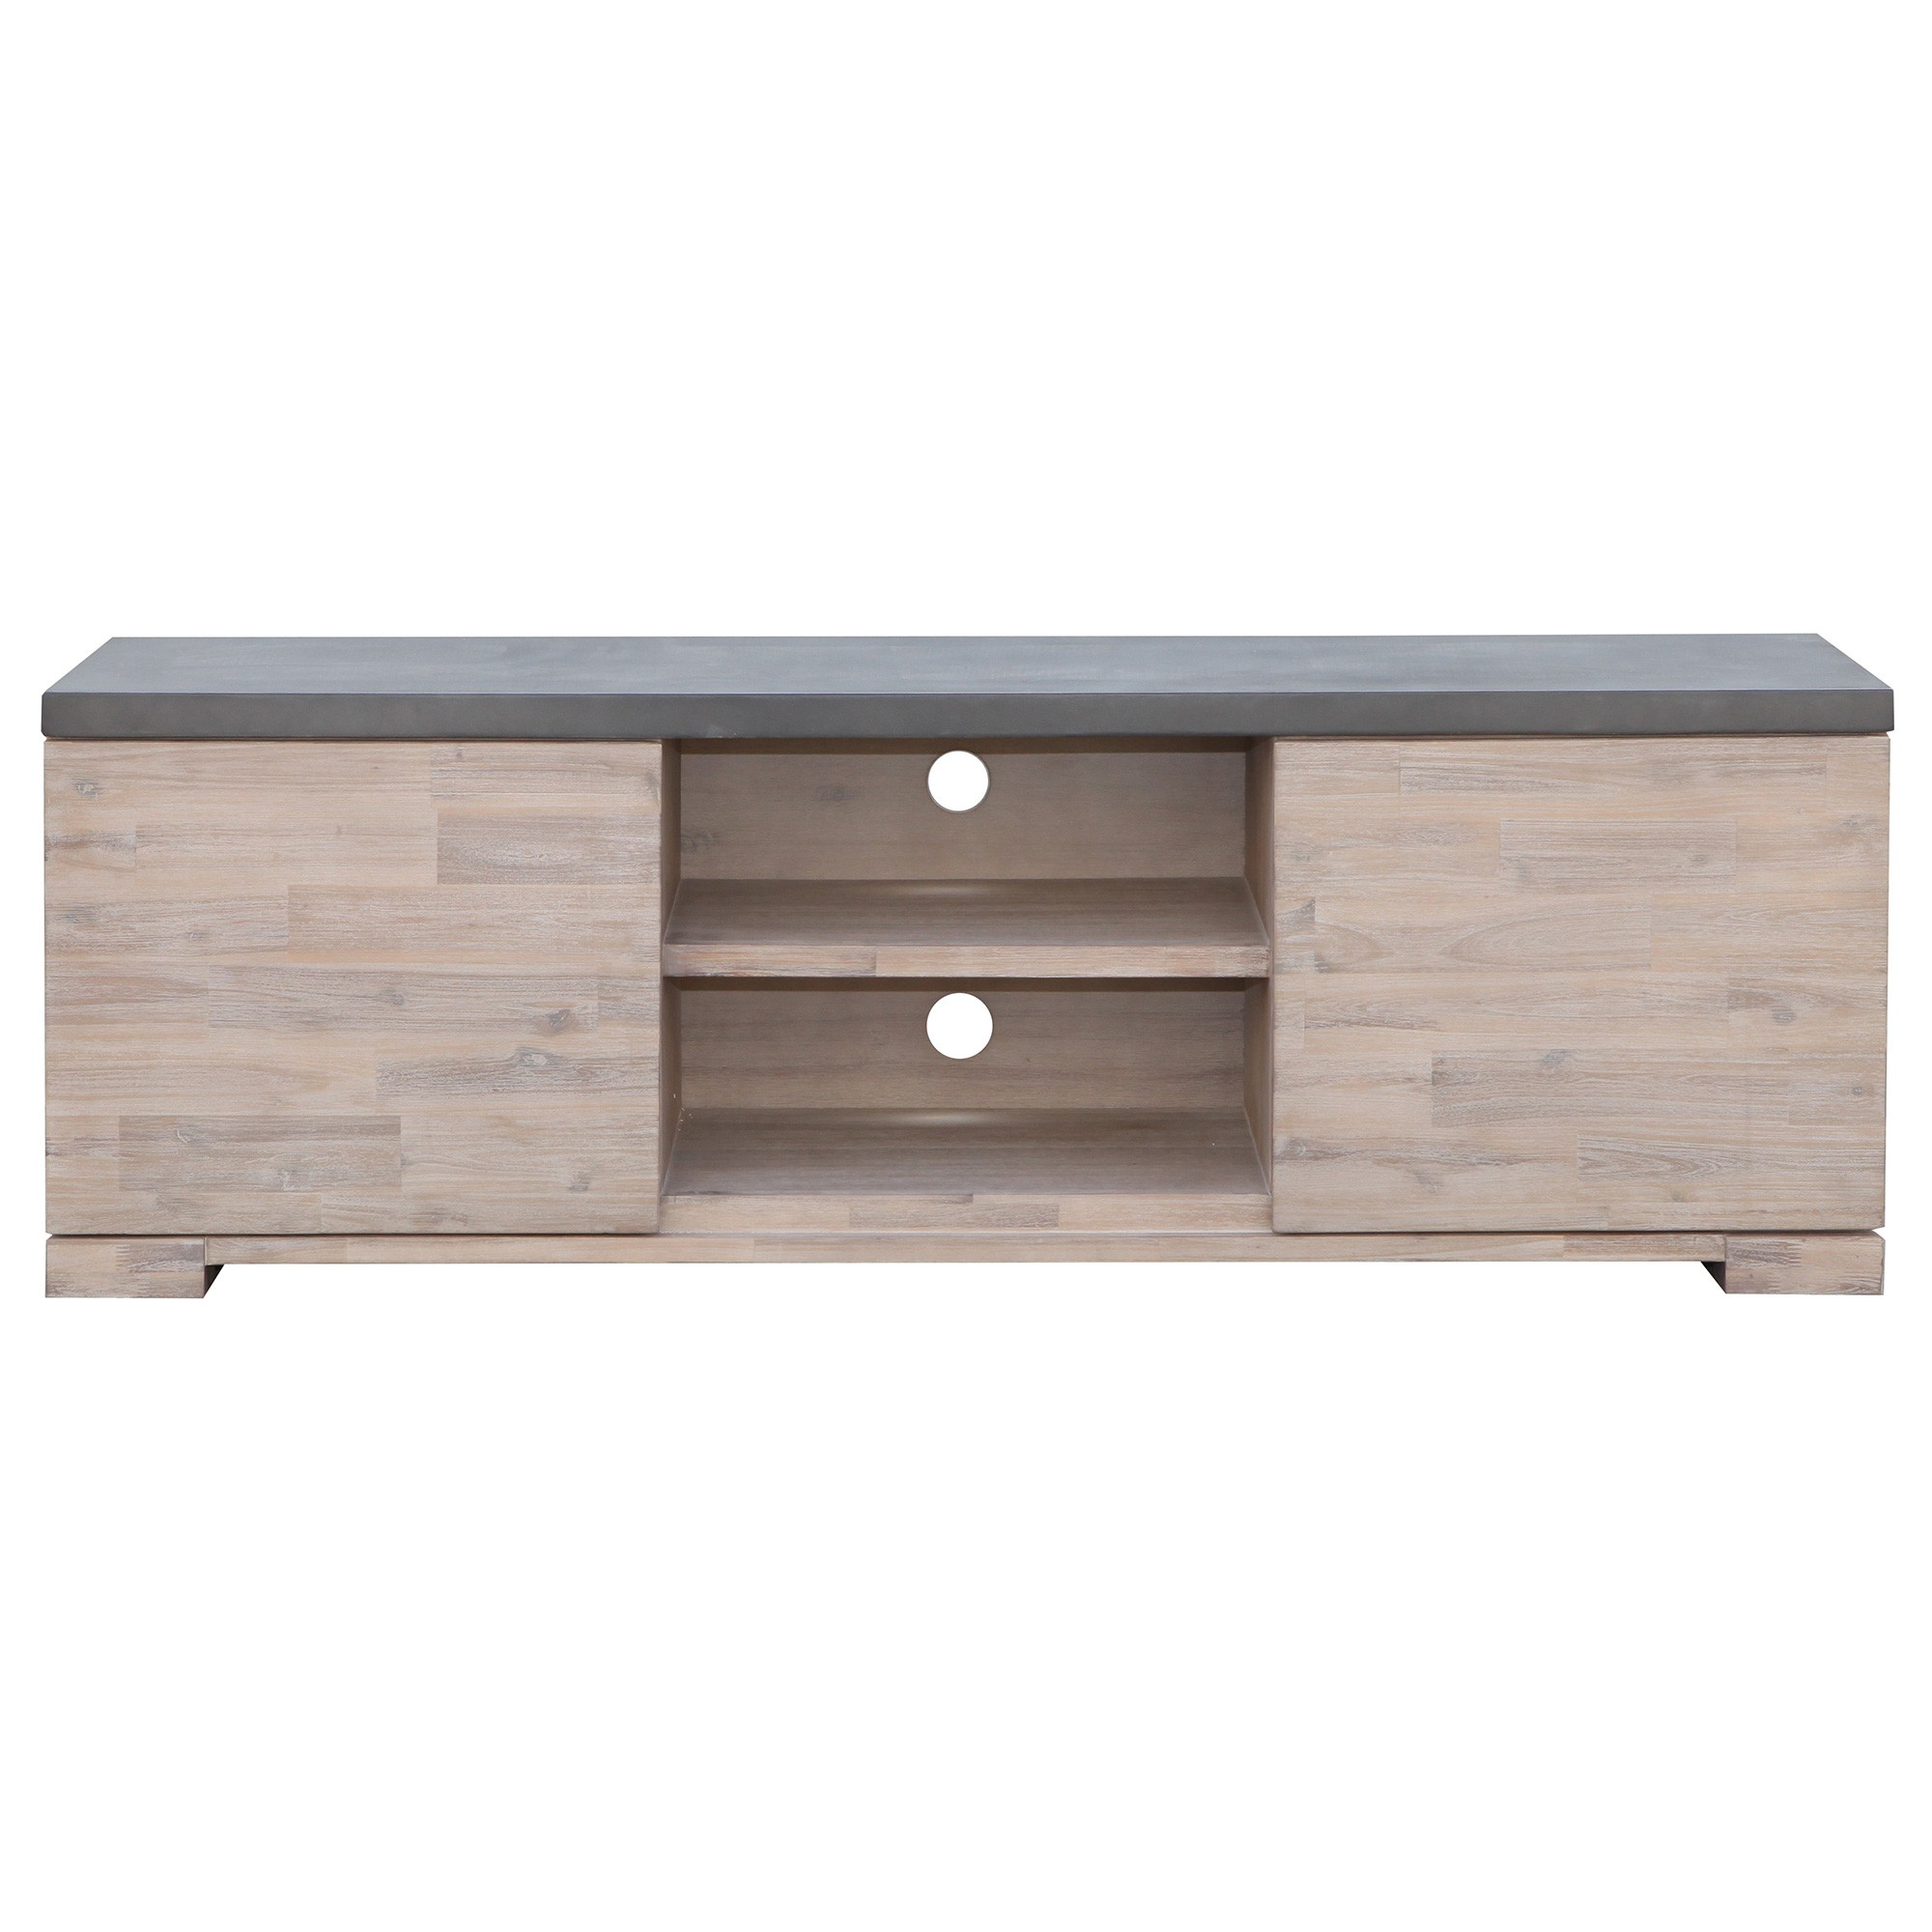 Pesaro Concrete Top Acacia Timber 2Door Lowline TV Unit, 165cm